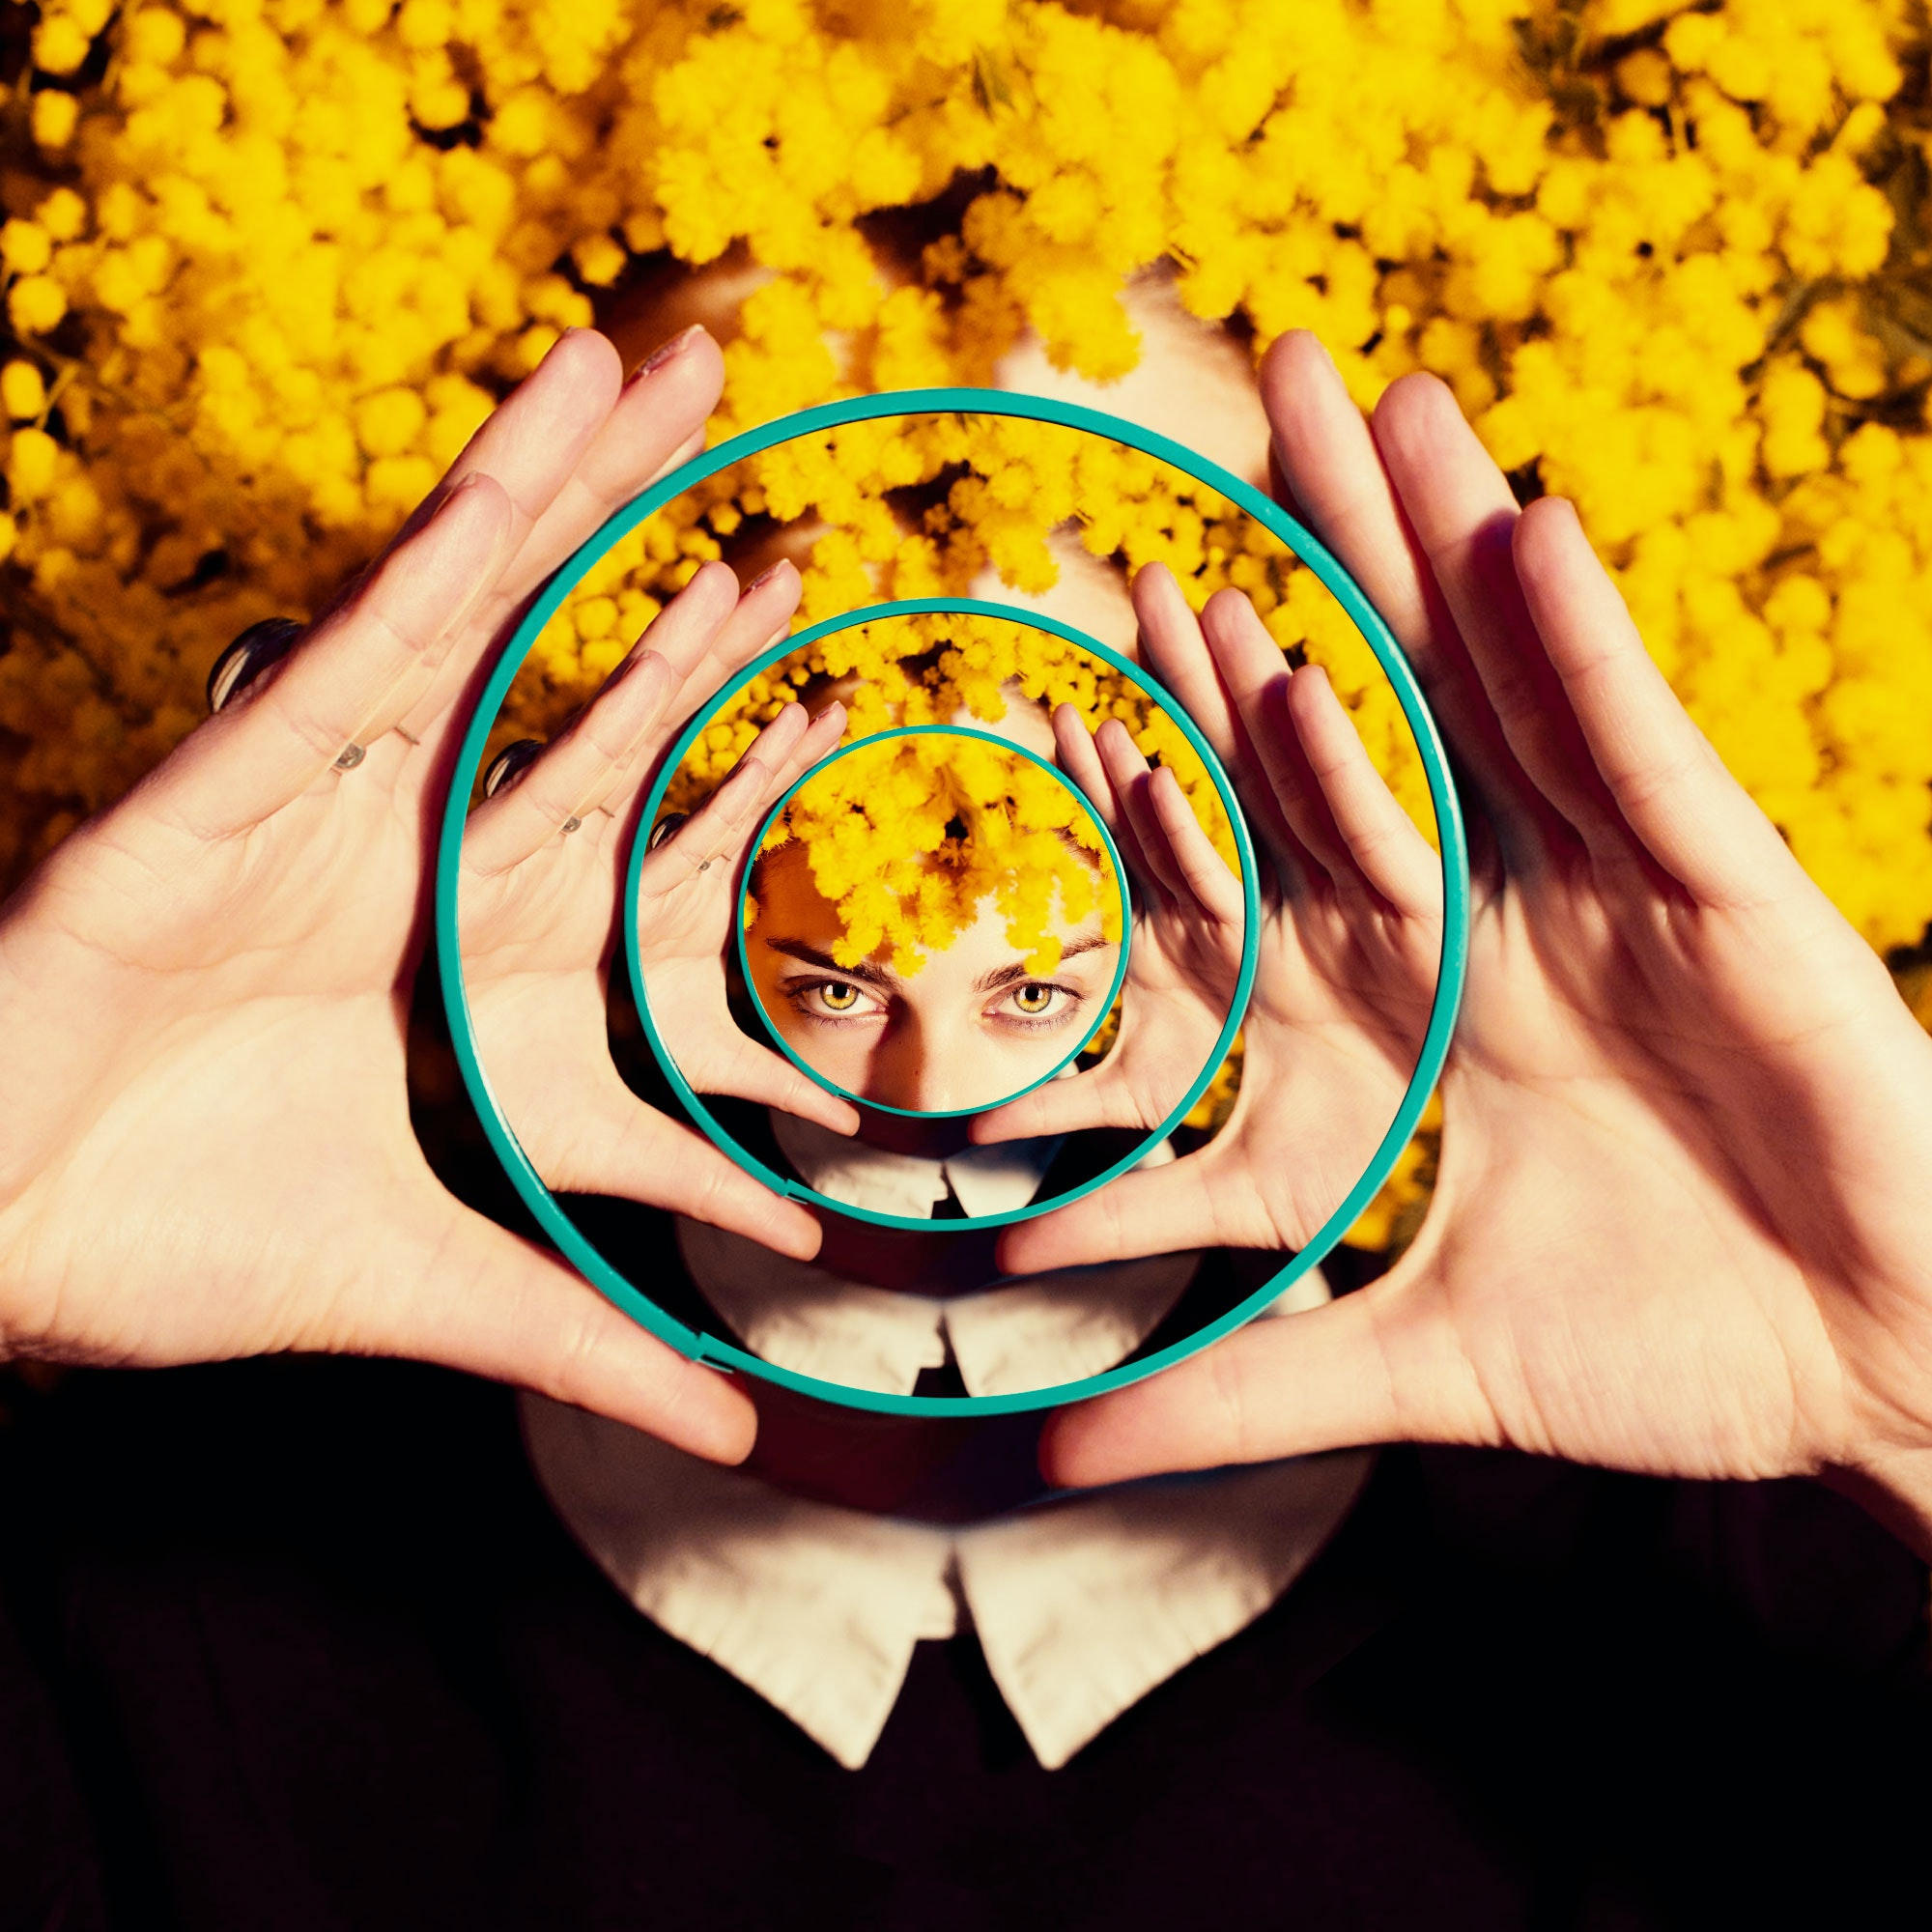 Photo of woman holding a mirror in front of yellow flowers